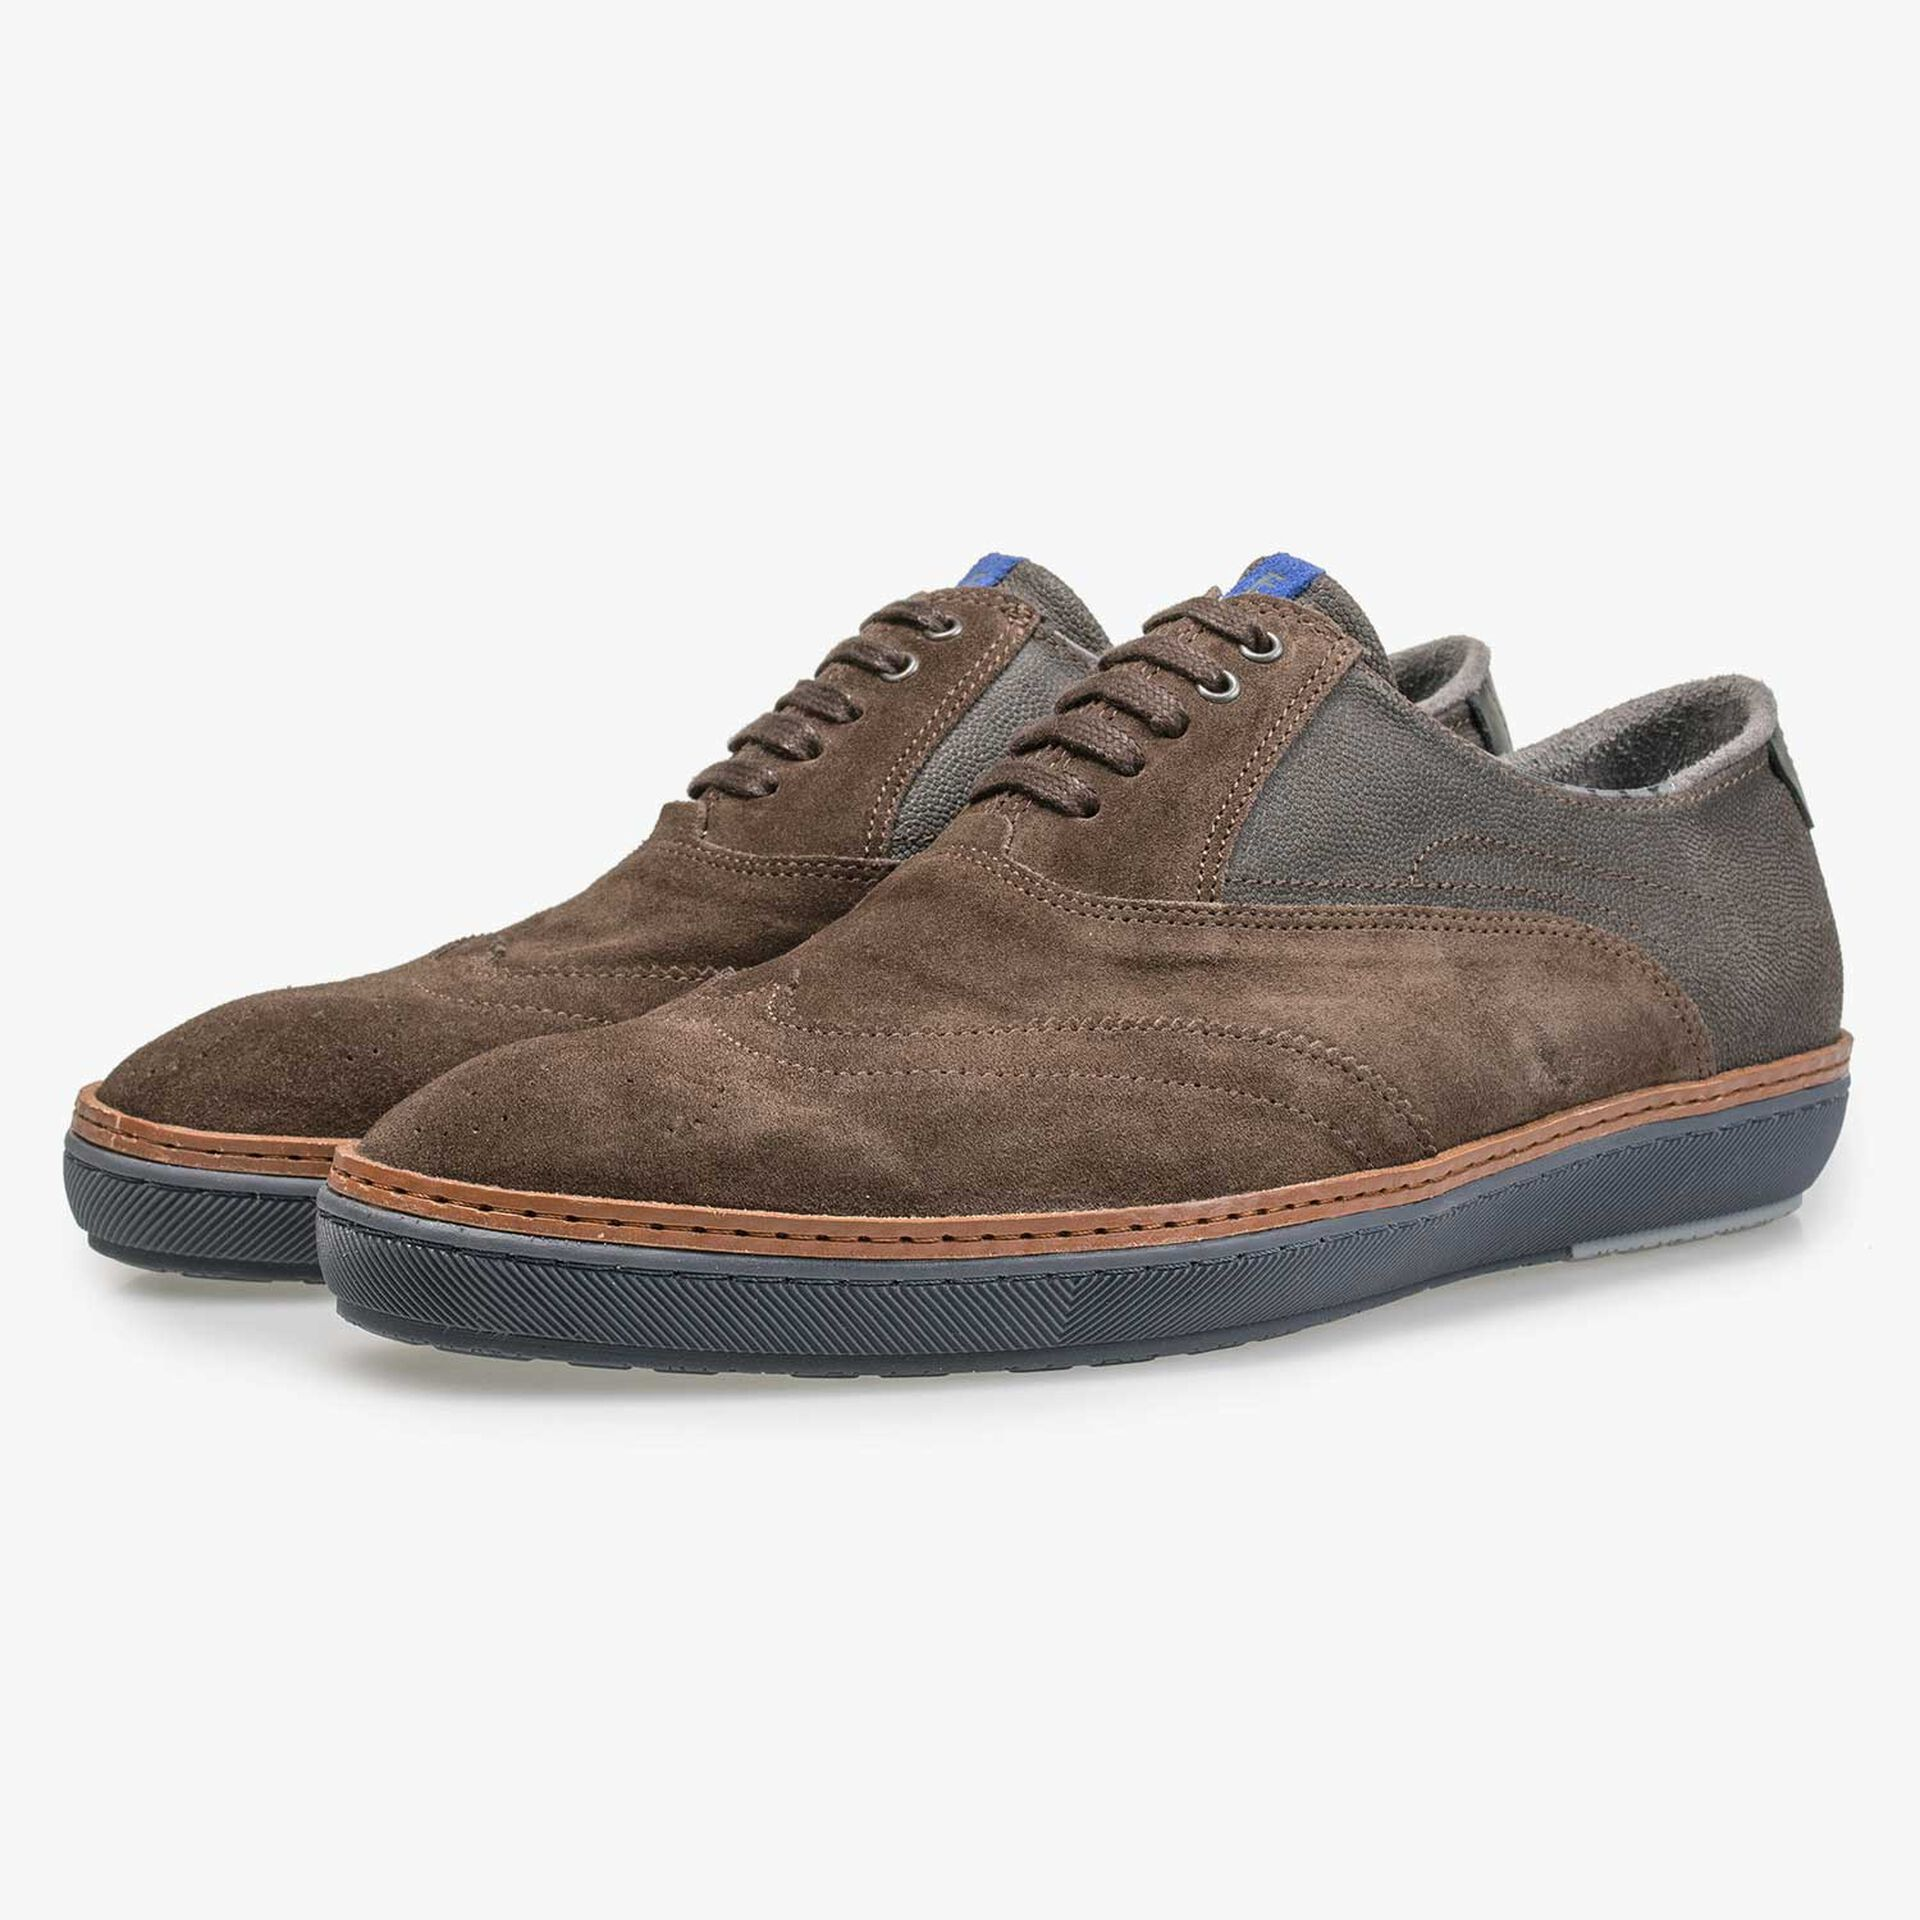 Brown calf's suede leather brogue sneaker